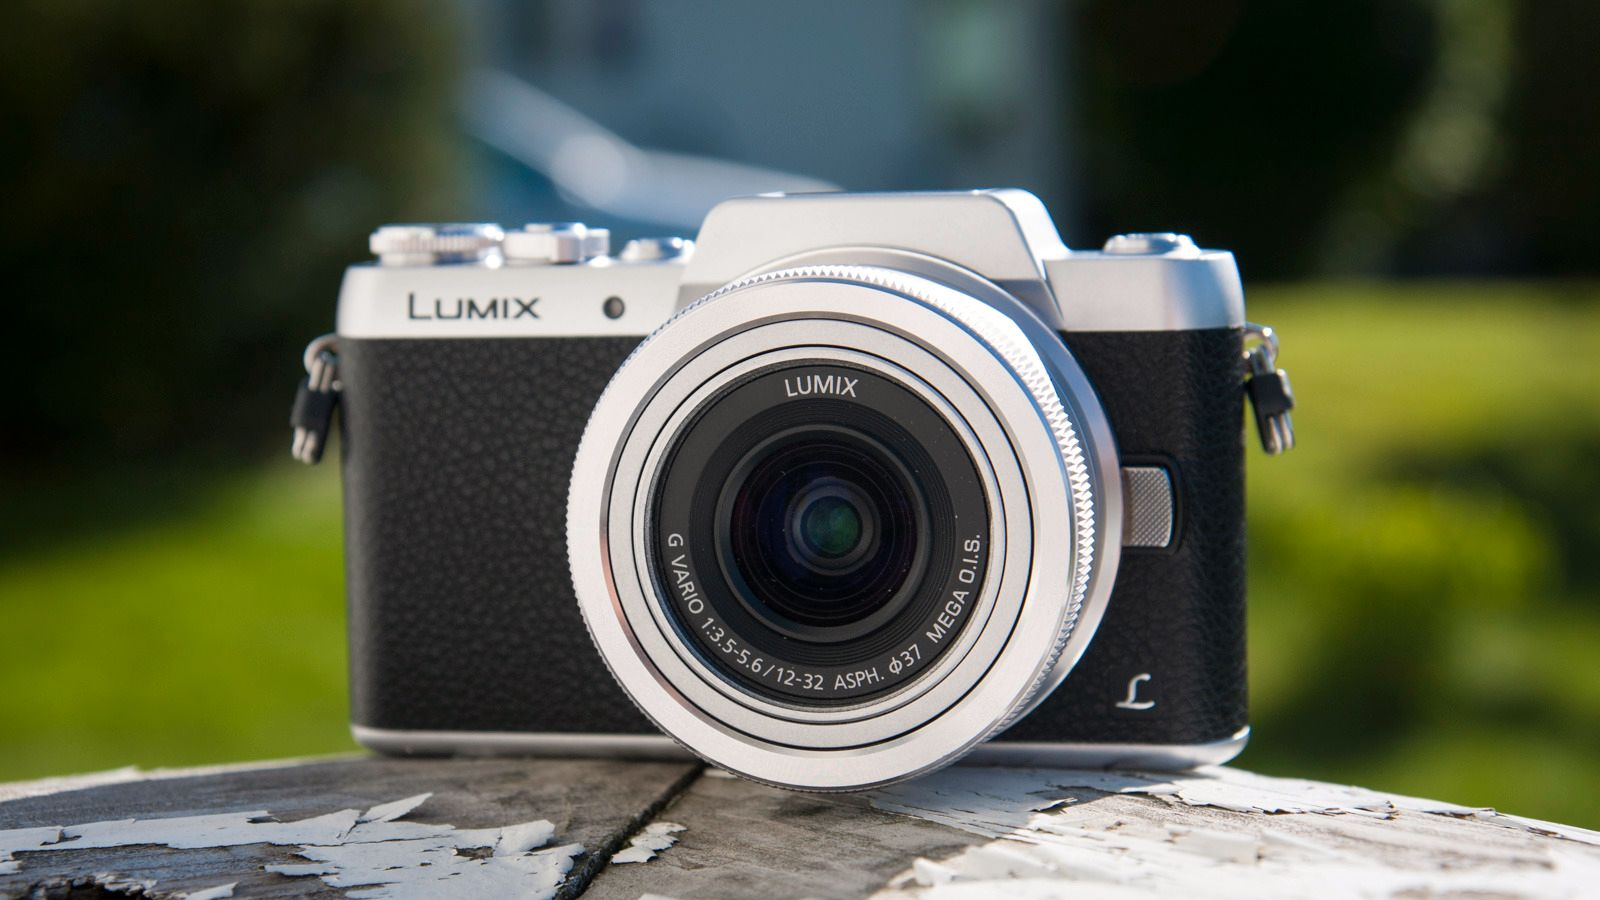 Panasonic Lumix DMC-GF7